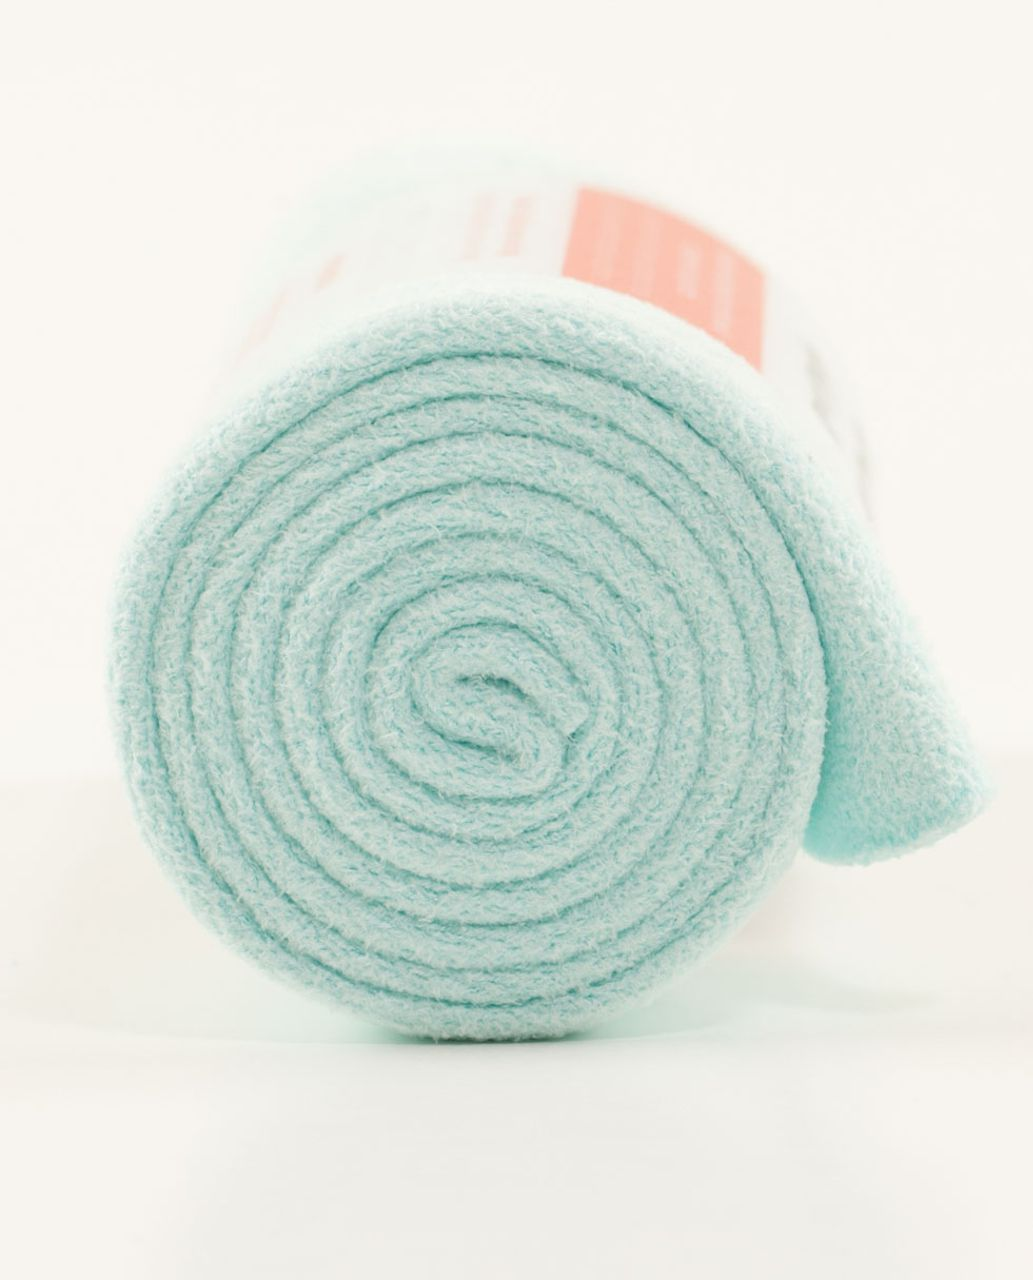 Lululemon The (Small) Towel - Aquamarine